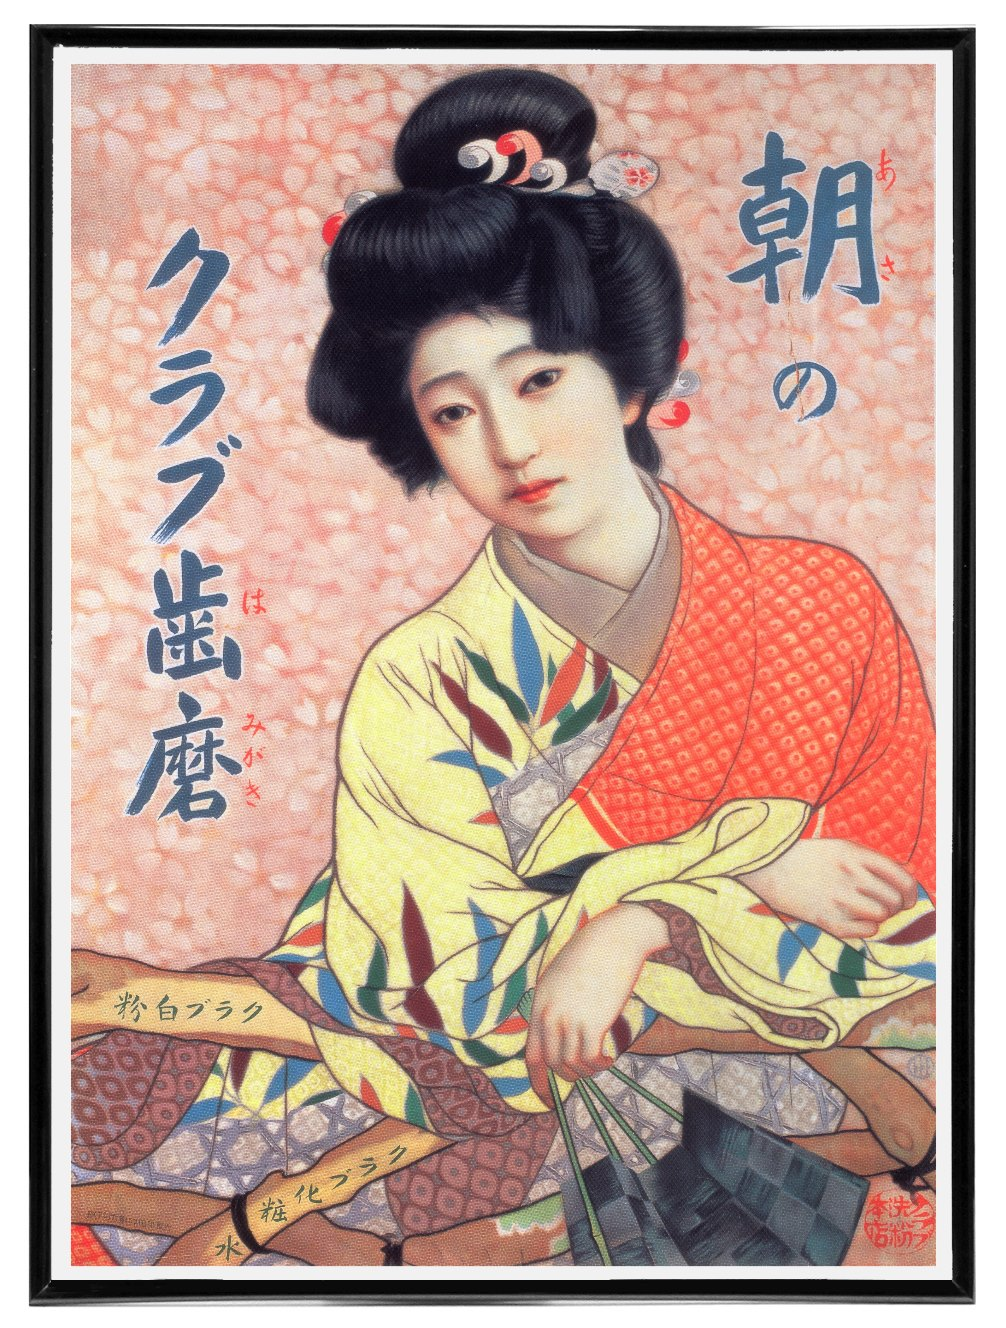 Vintage Japanese Advertising Posters - RetroGraphik